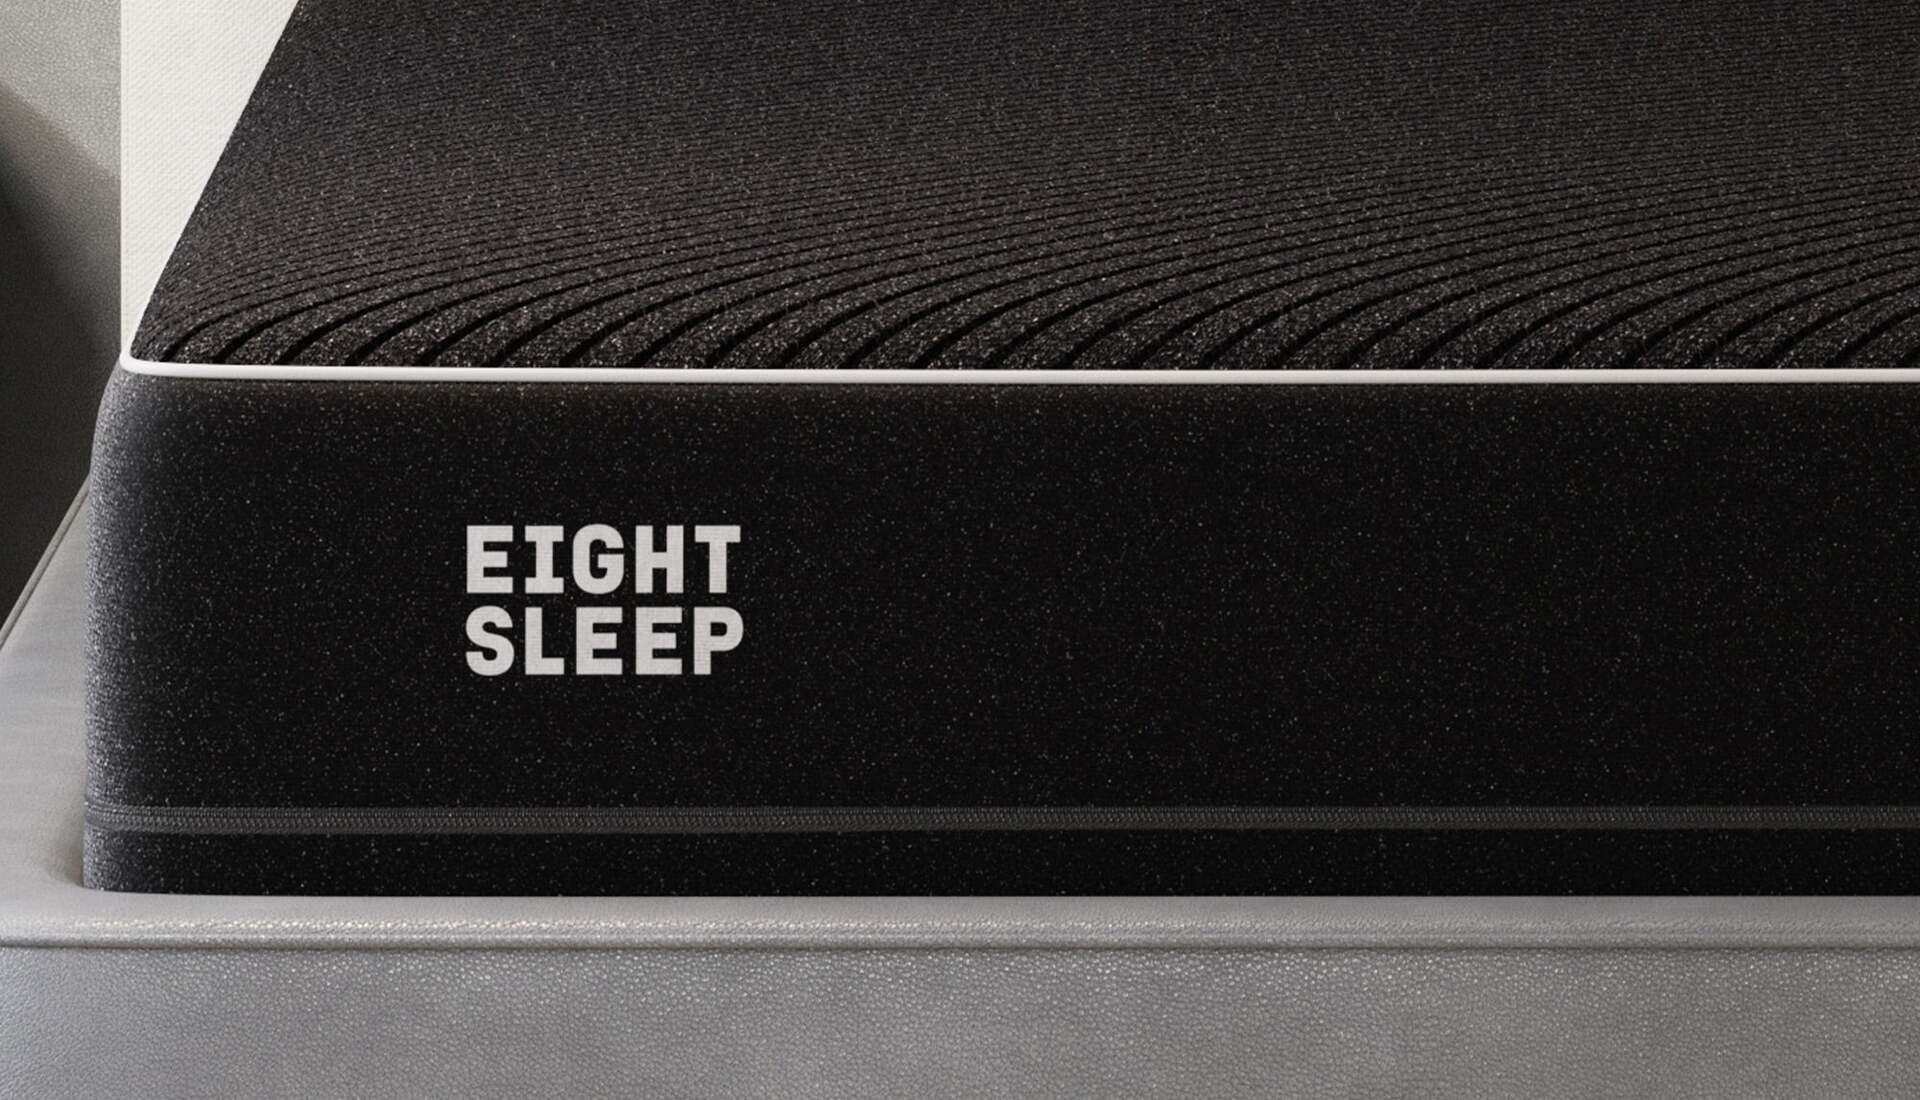 Eight Sleep Pod Pro cover close up material shot